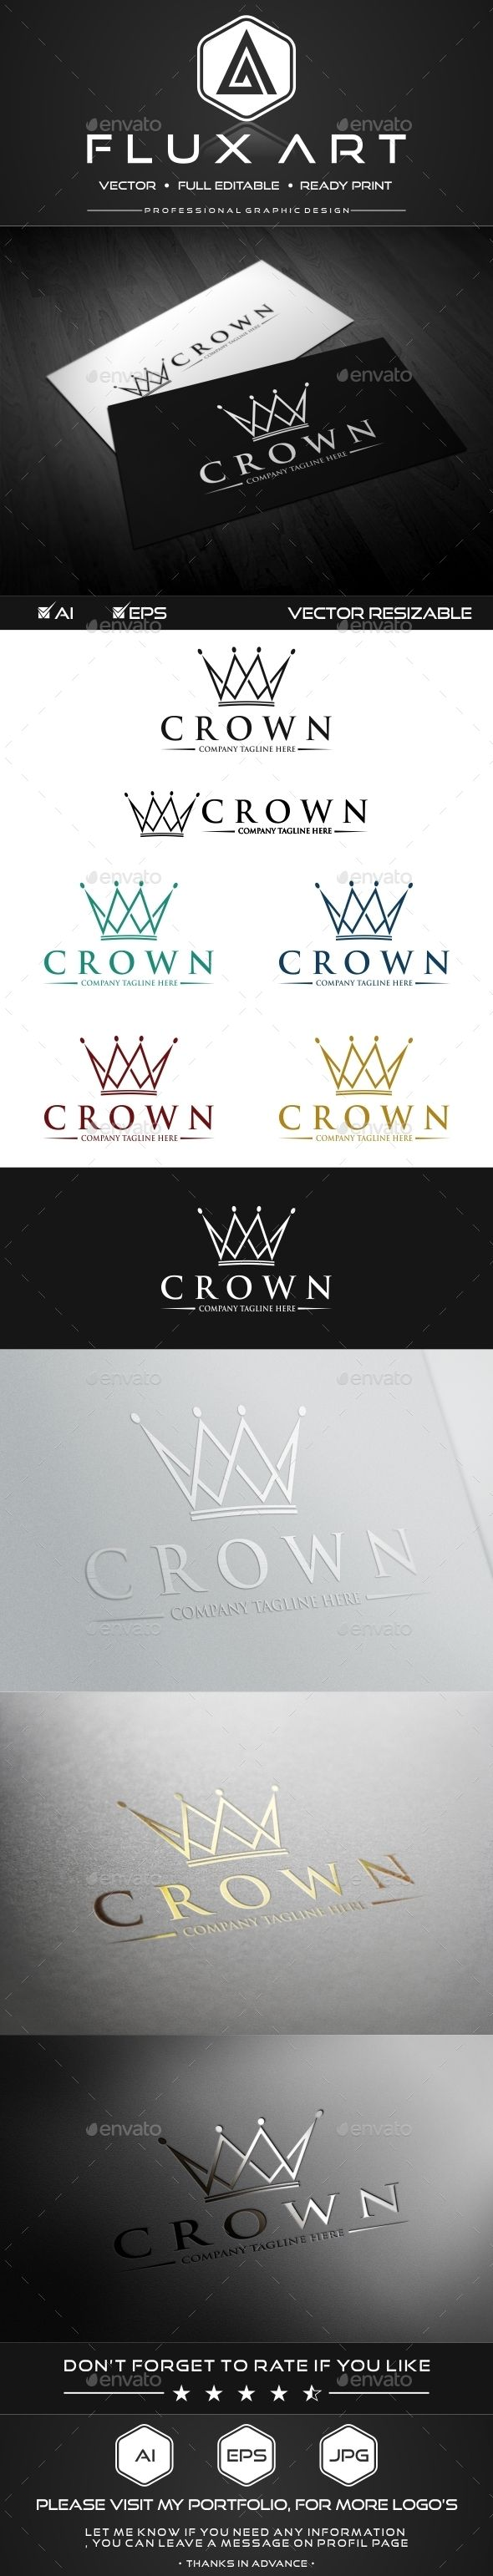 Royal Crown Logo Template #design Download: http://graphicriver.net/item/royal-crown-logo/10172266?ref=ksioks